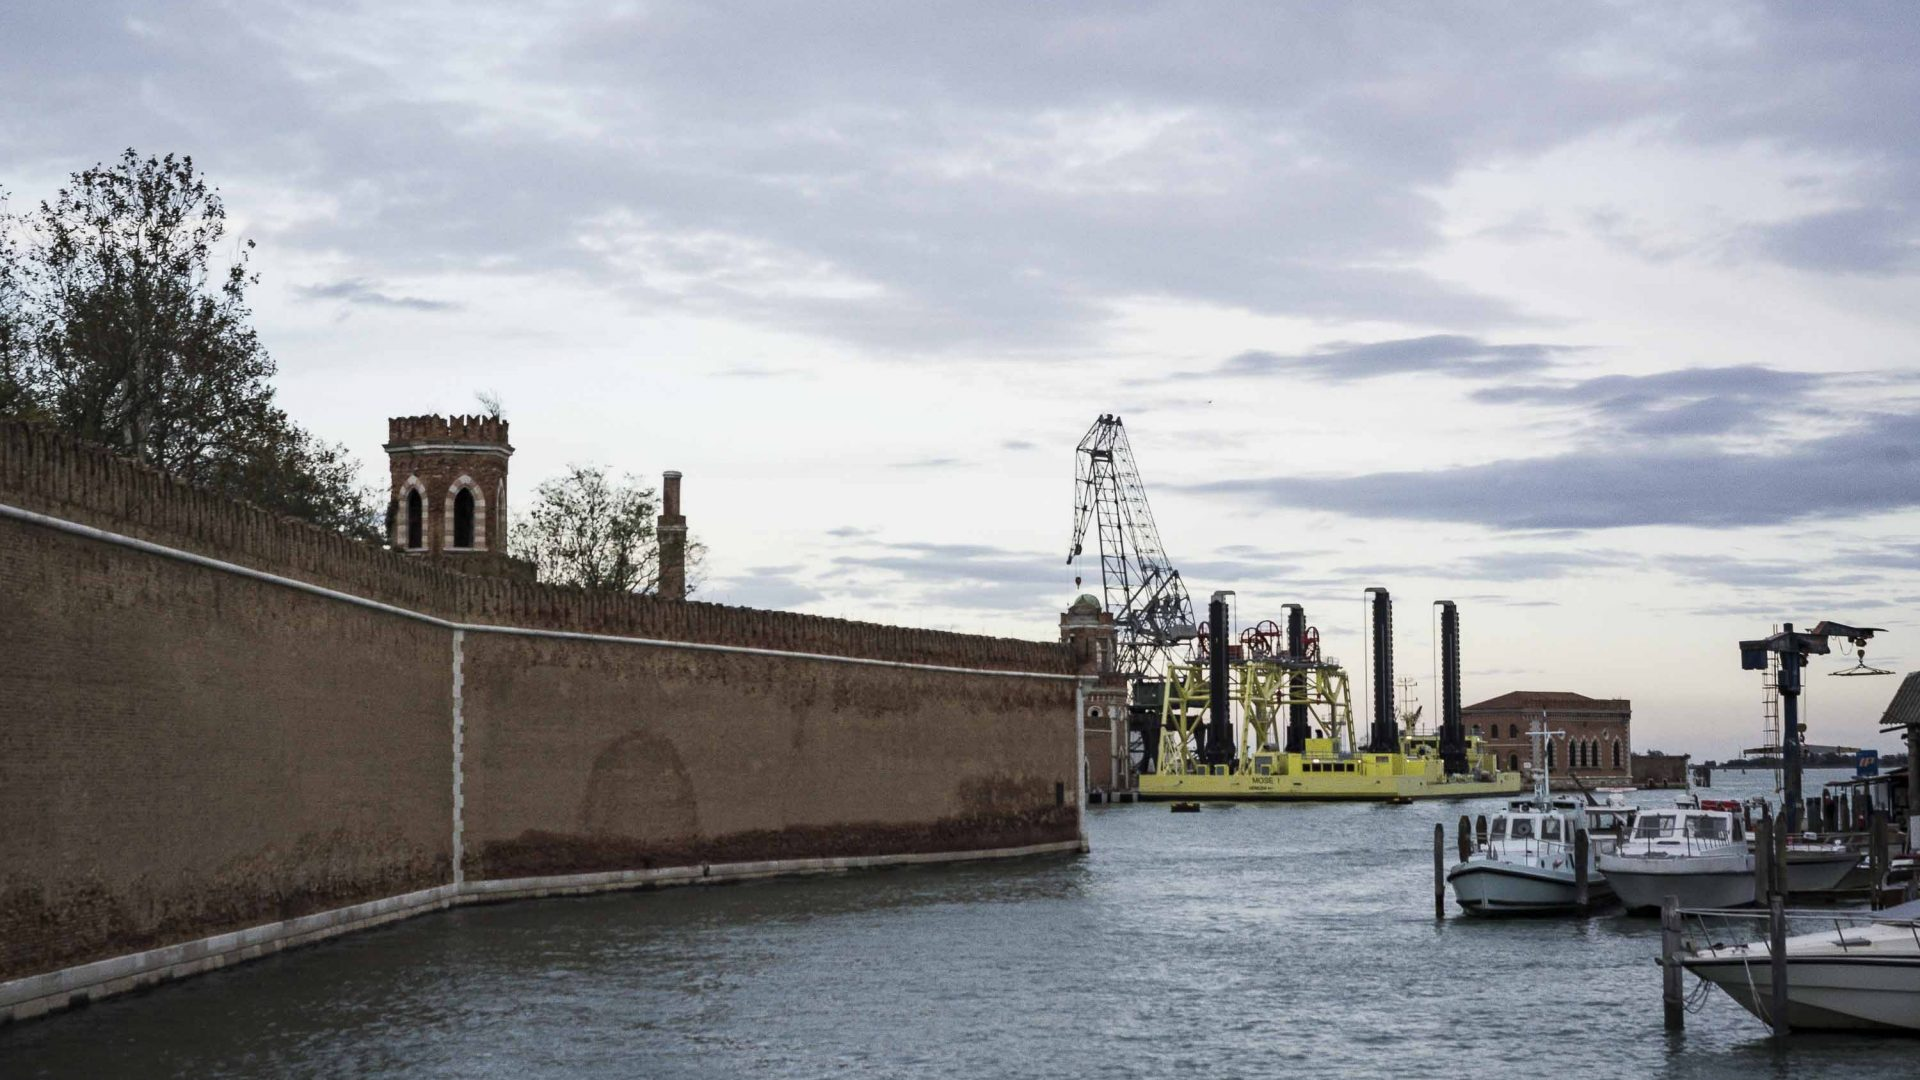 The MOSE, designed to protect Venice from high tides, remains incomplete.